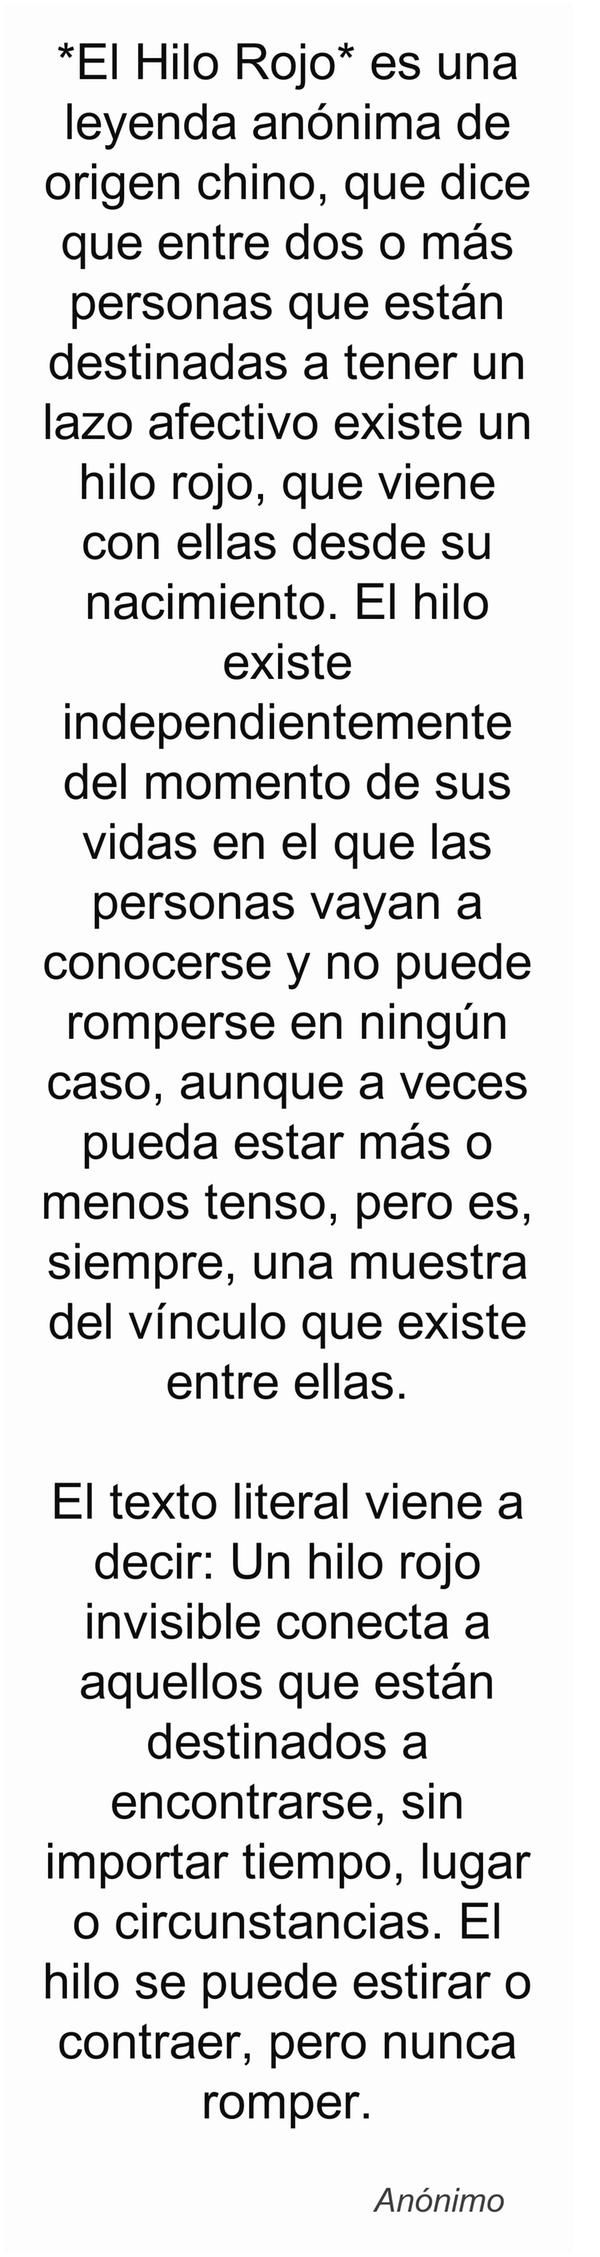 Leyenda El Hilo Rojo Quotes Pinterest Frases Thoughts And